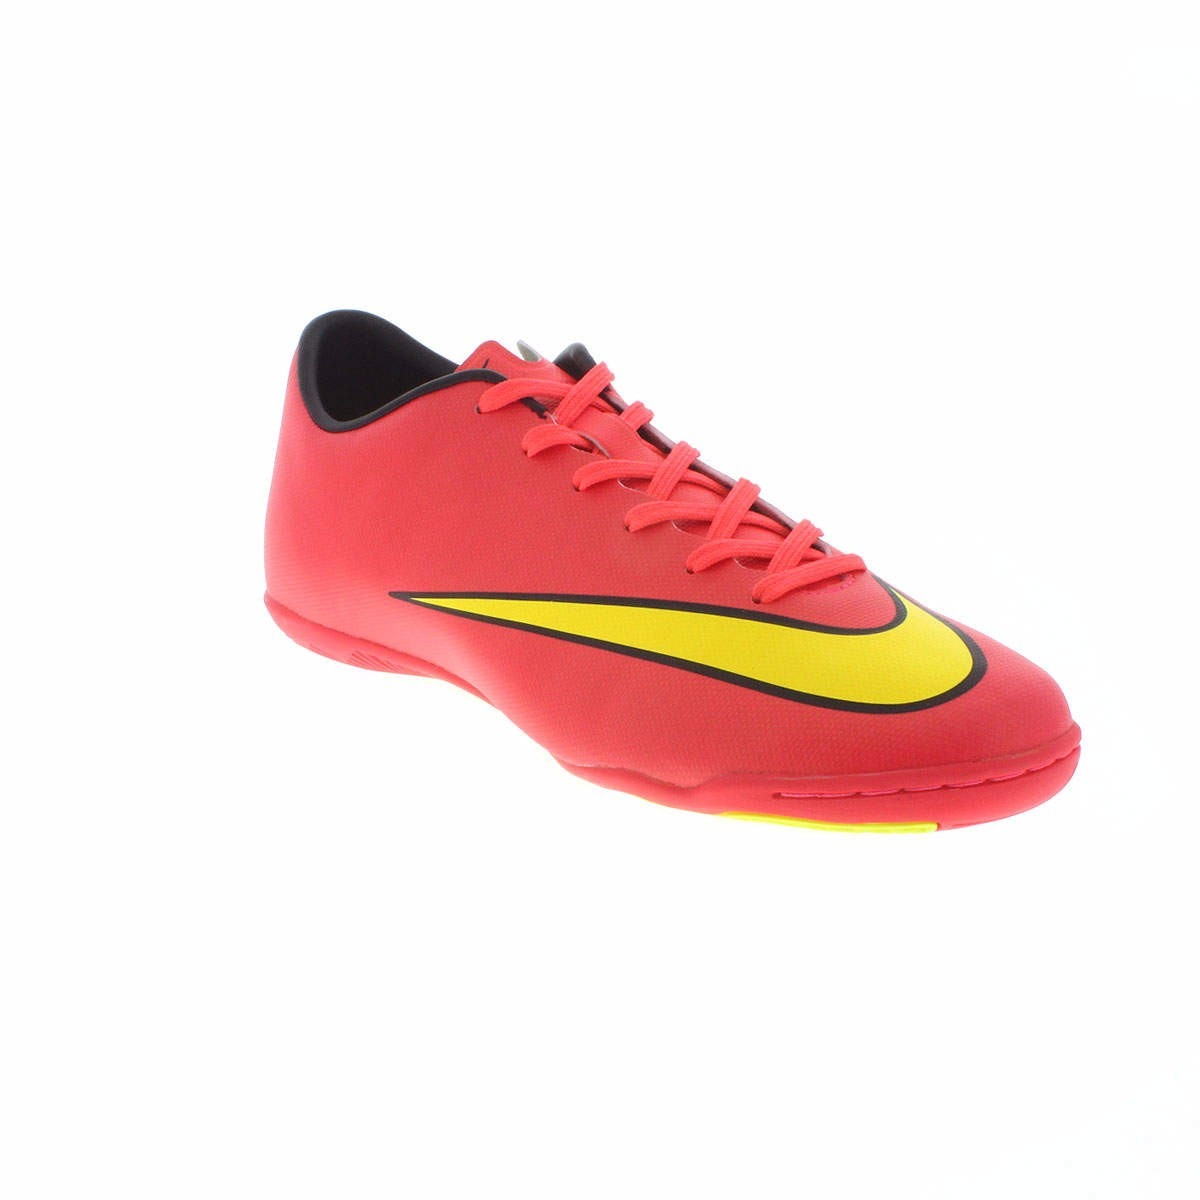 7ef77c776d ... shop chuteira nike mercurial victory 5 ic futsal frete grátis futsal  nike chuteira. mercurial victory ...